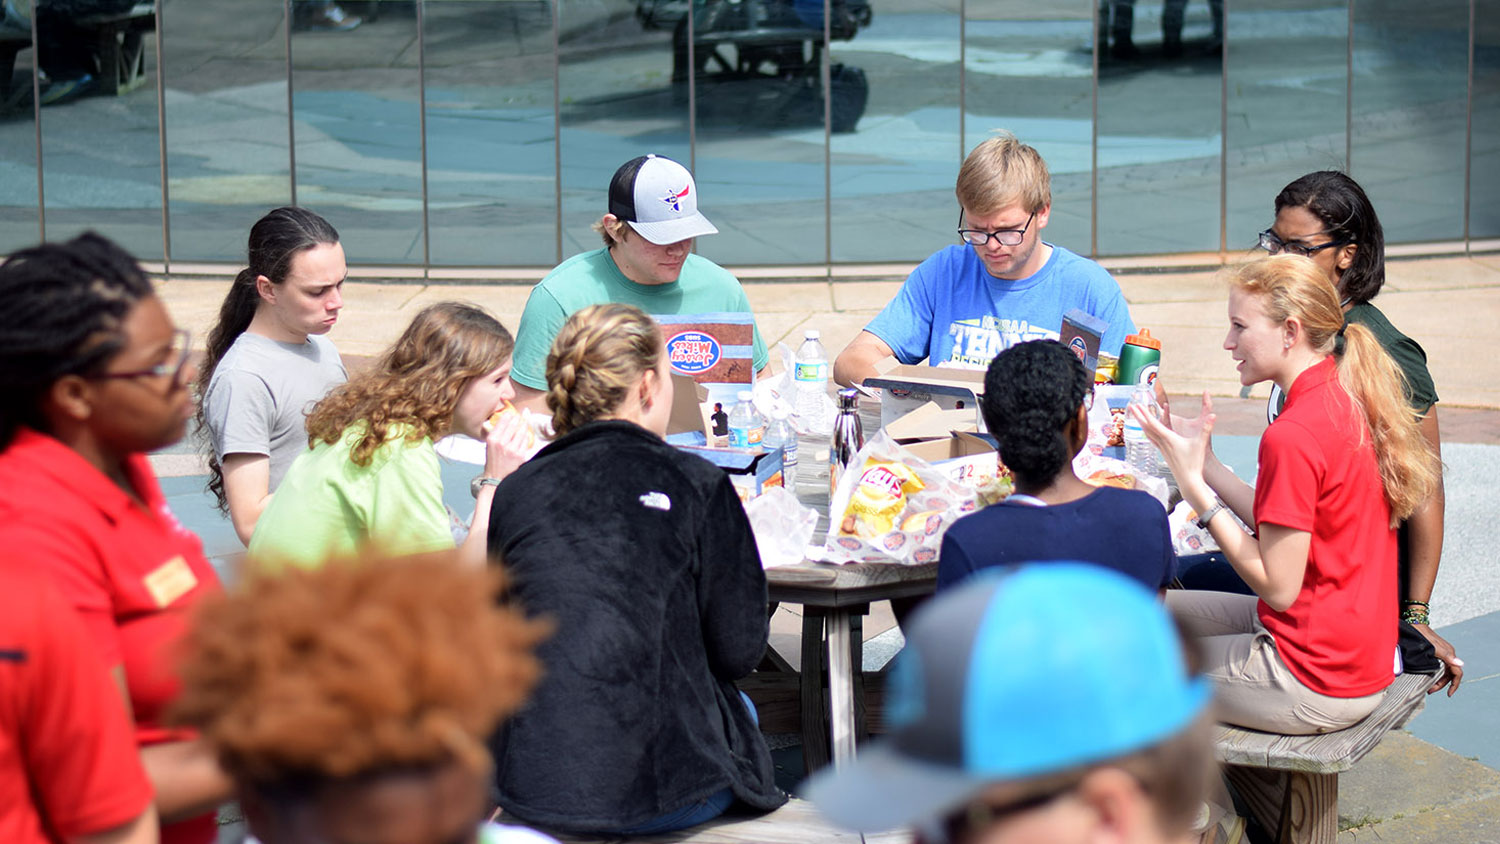 Students Eating Lunch Together - How to Apply -Parks Recreation and Tourism Management NC State